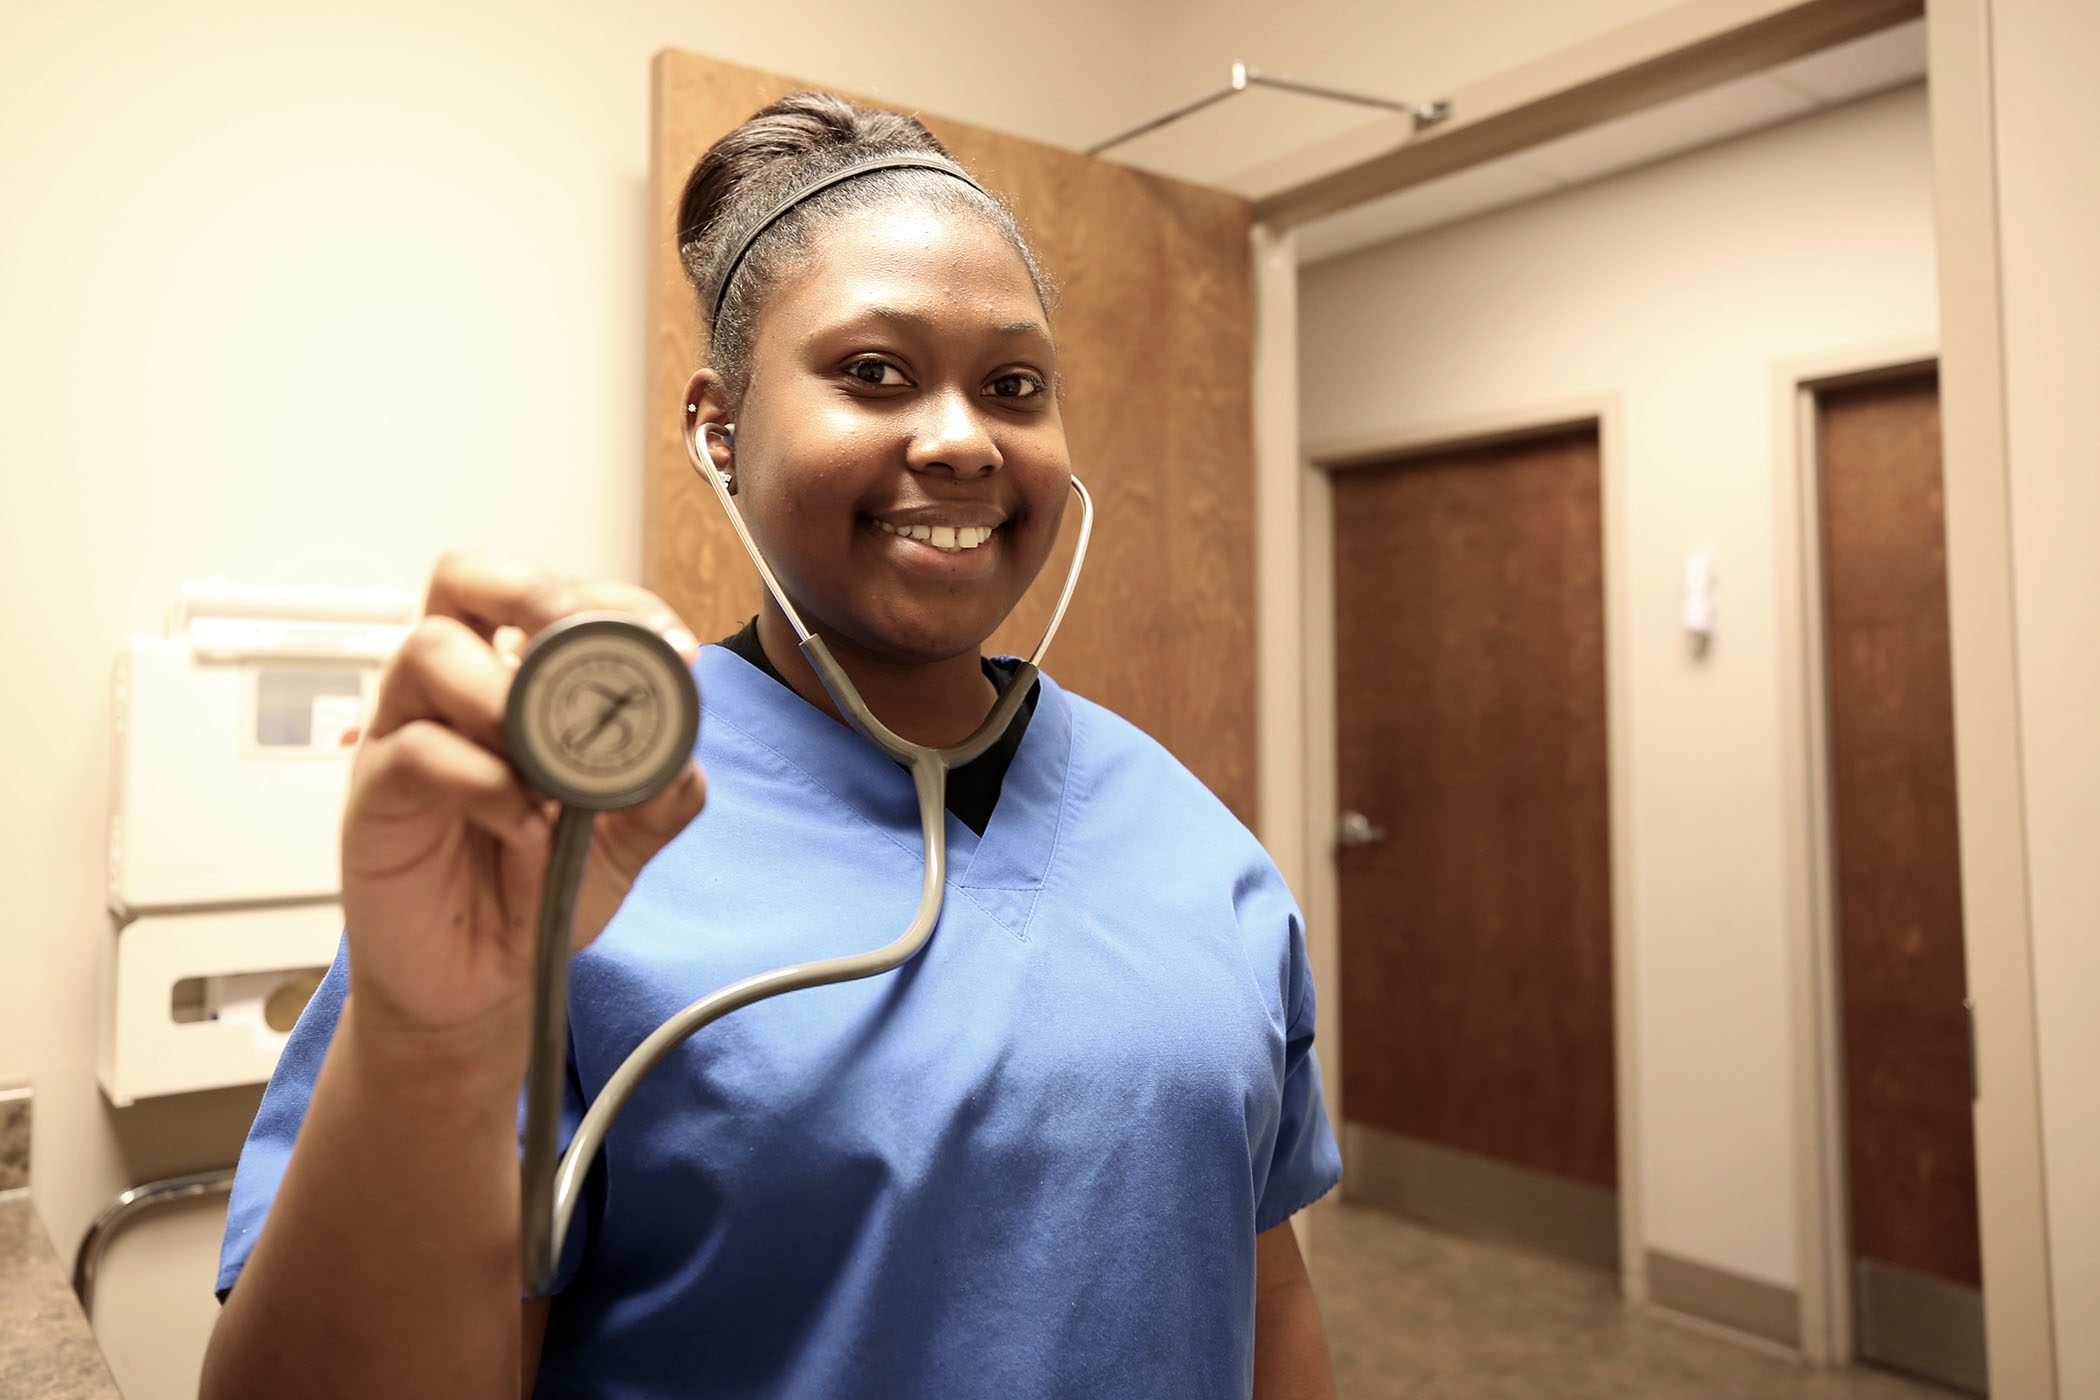 Francesca has clinical duties at a local health facility through the Clarke County Career Tech Center.